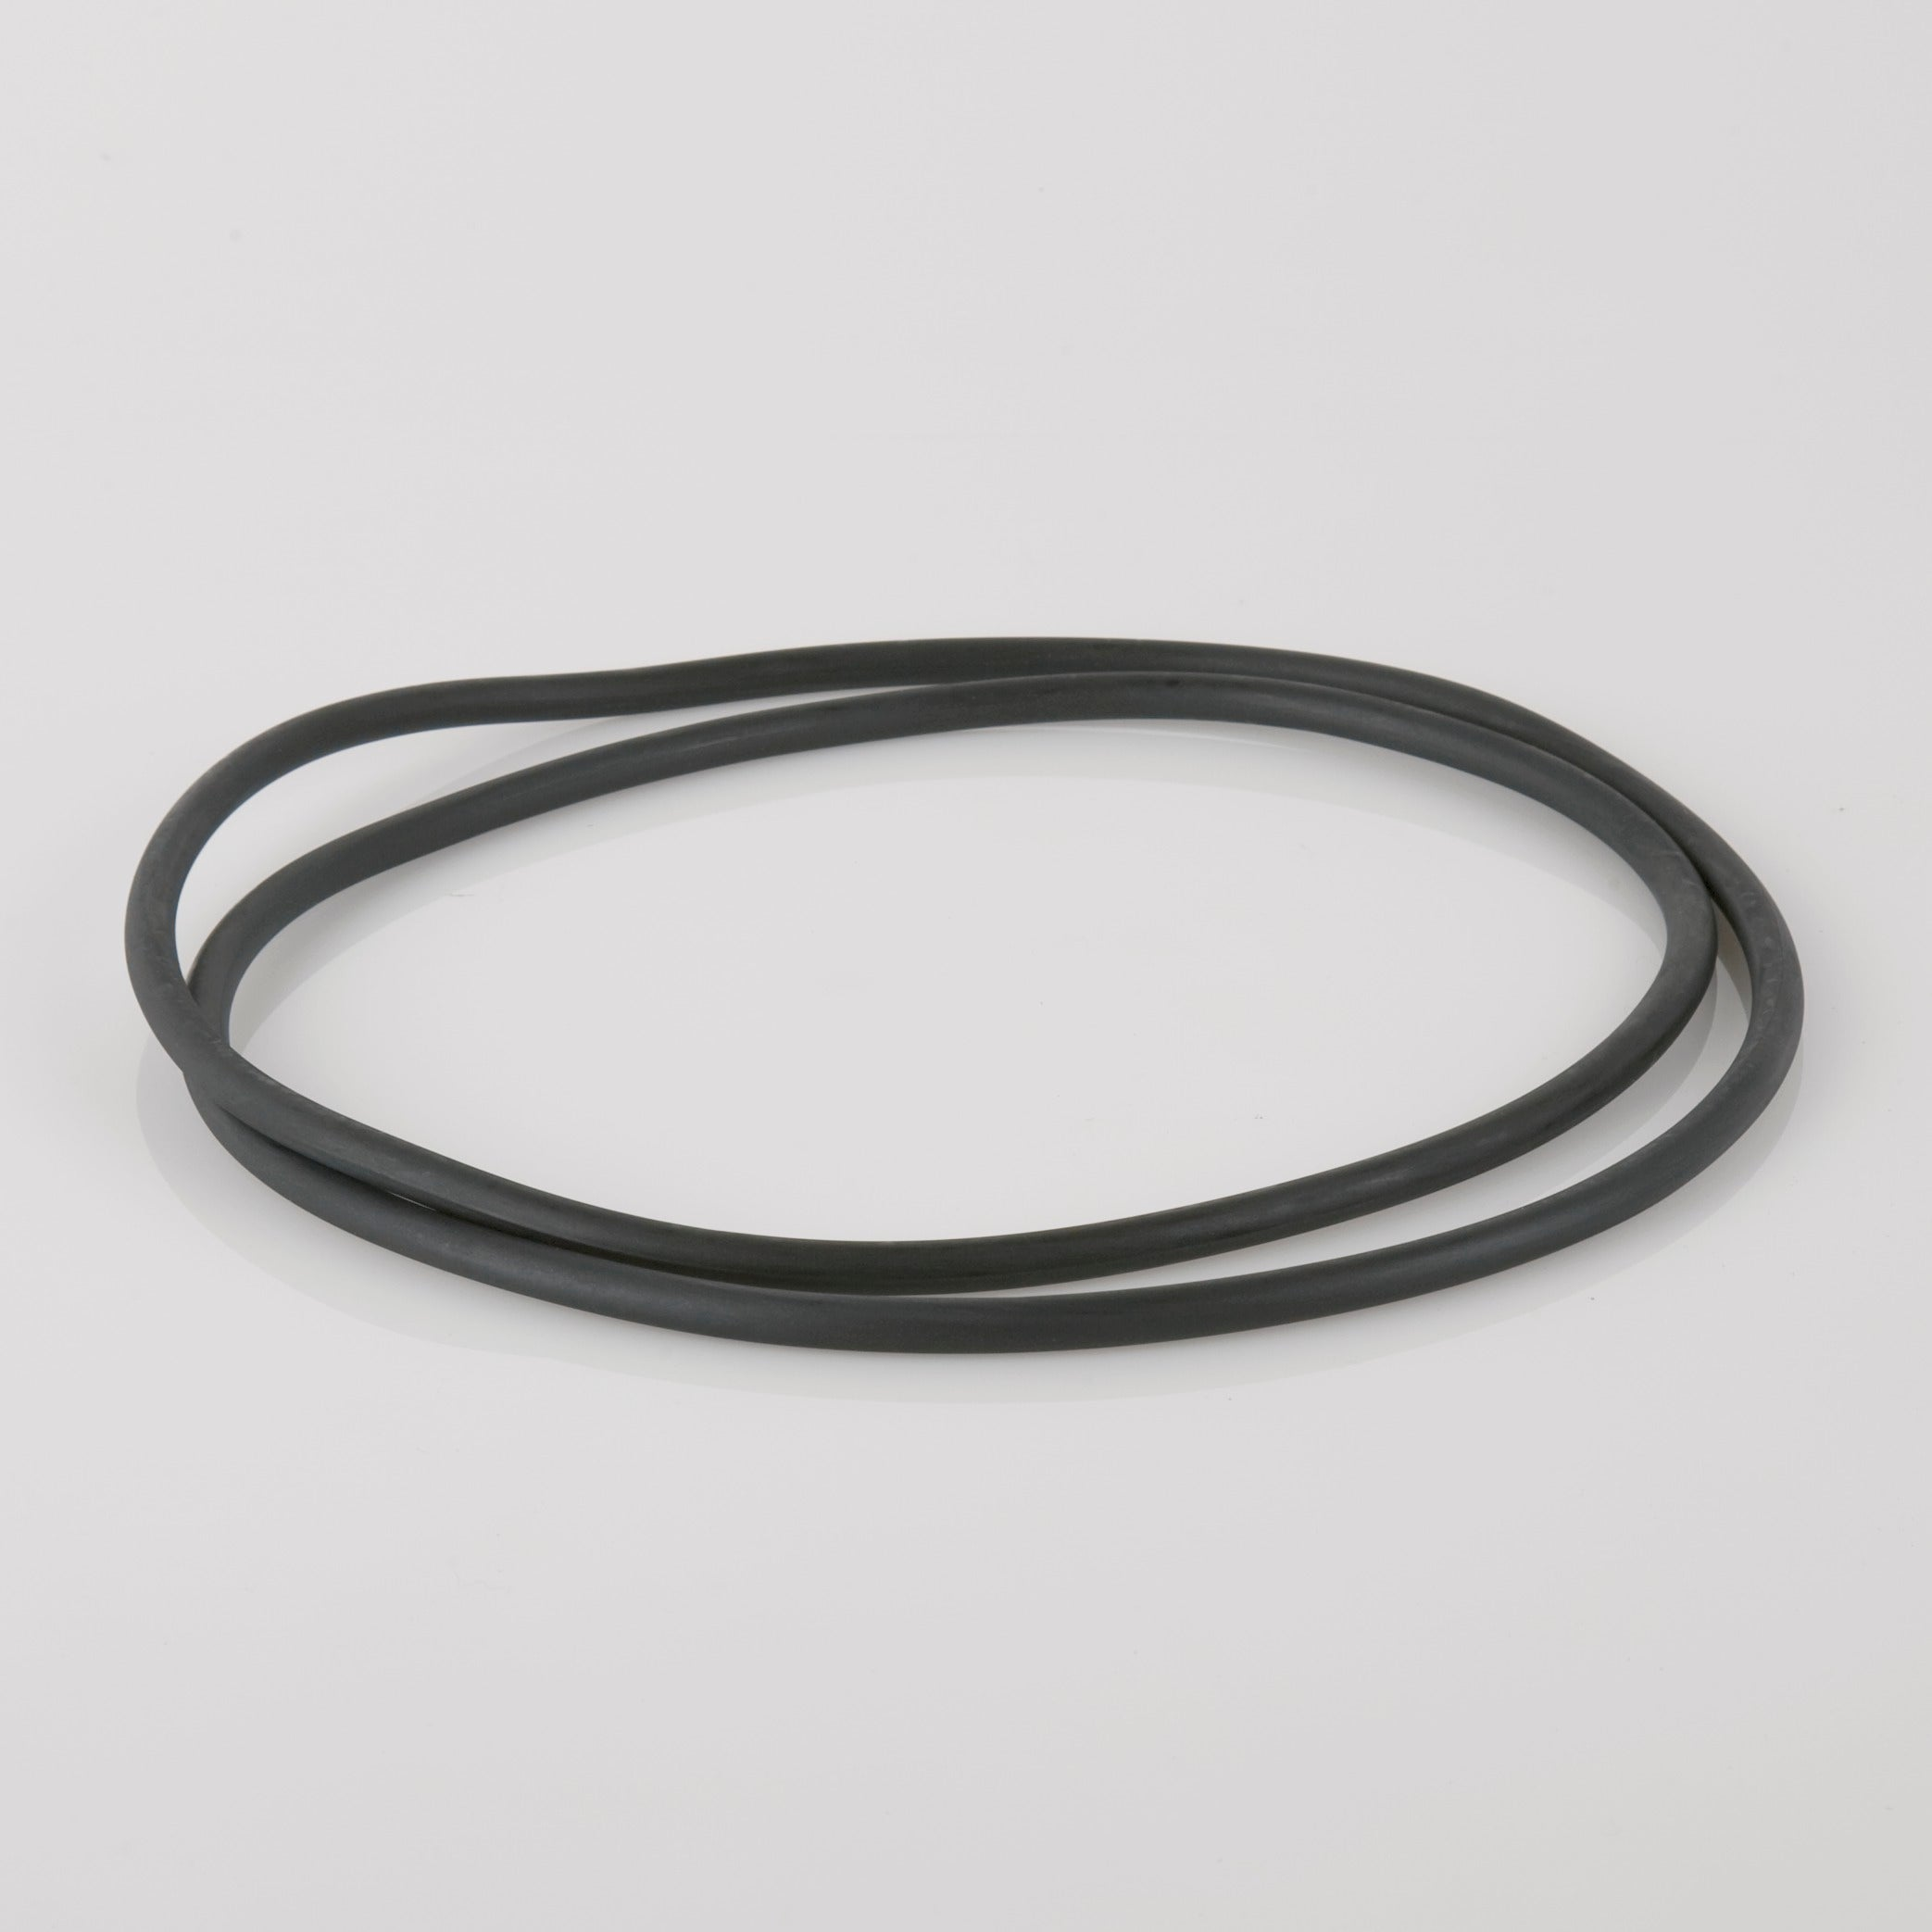 450mm Diameter Sealing Ring (Use W/ B5397 | Black)